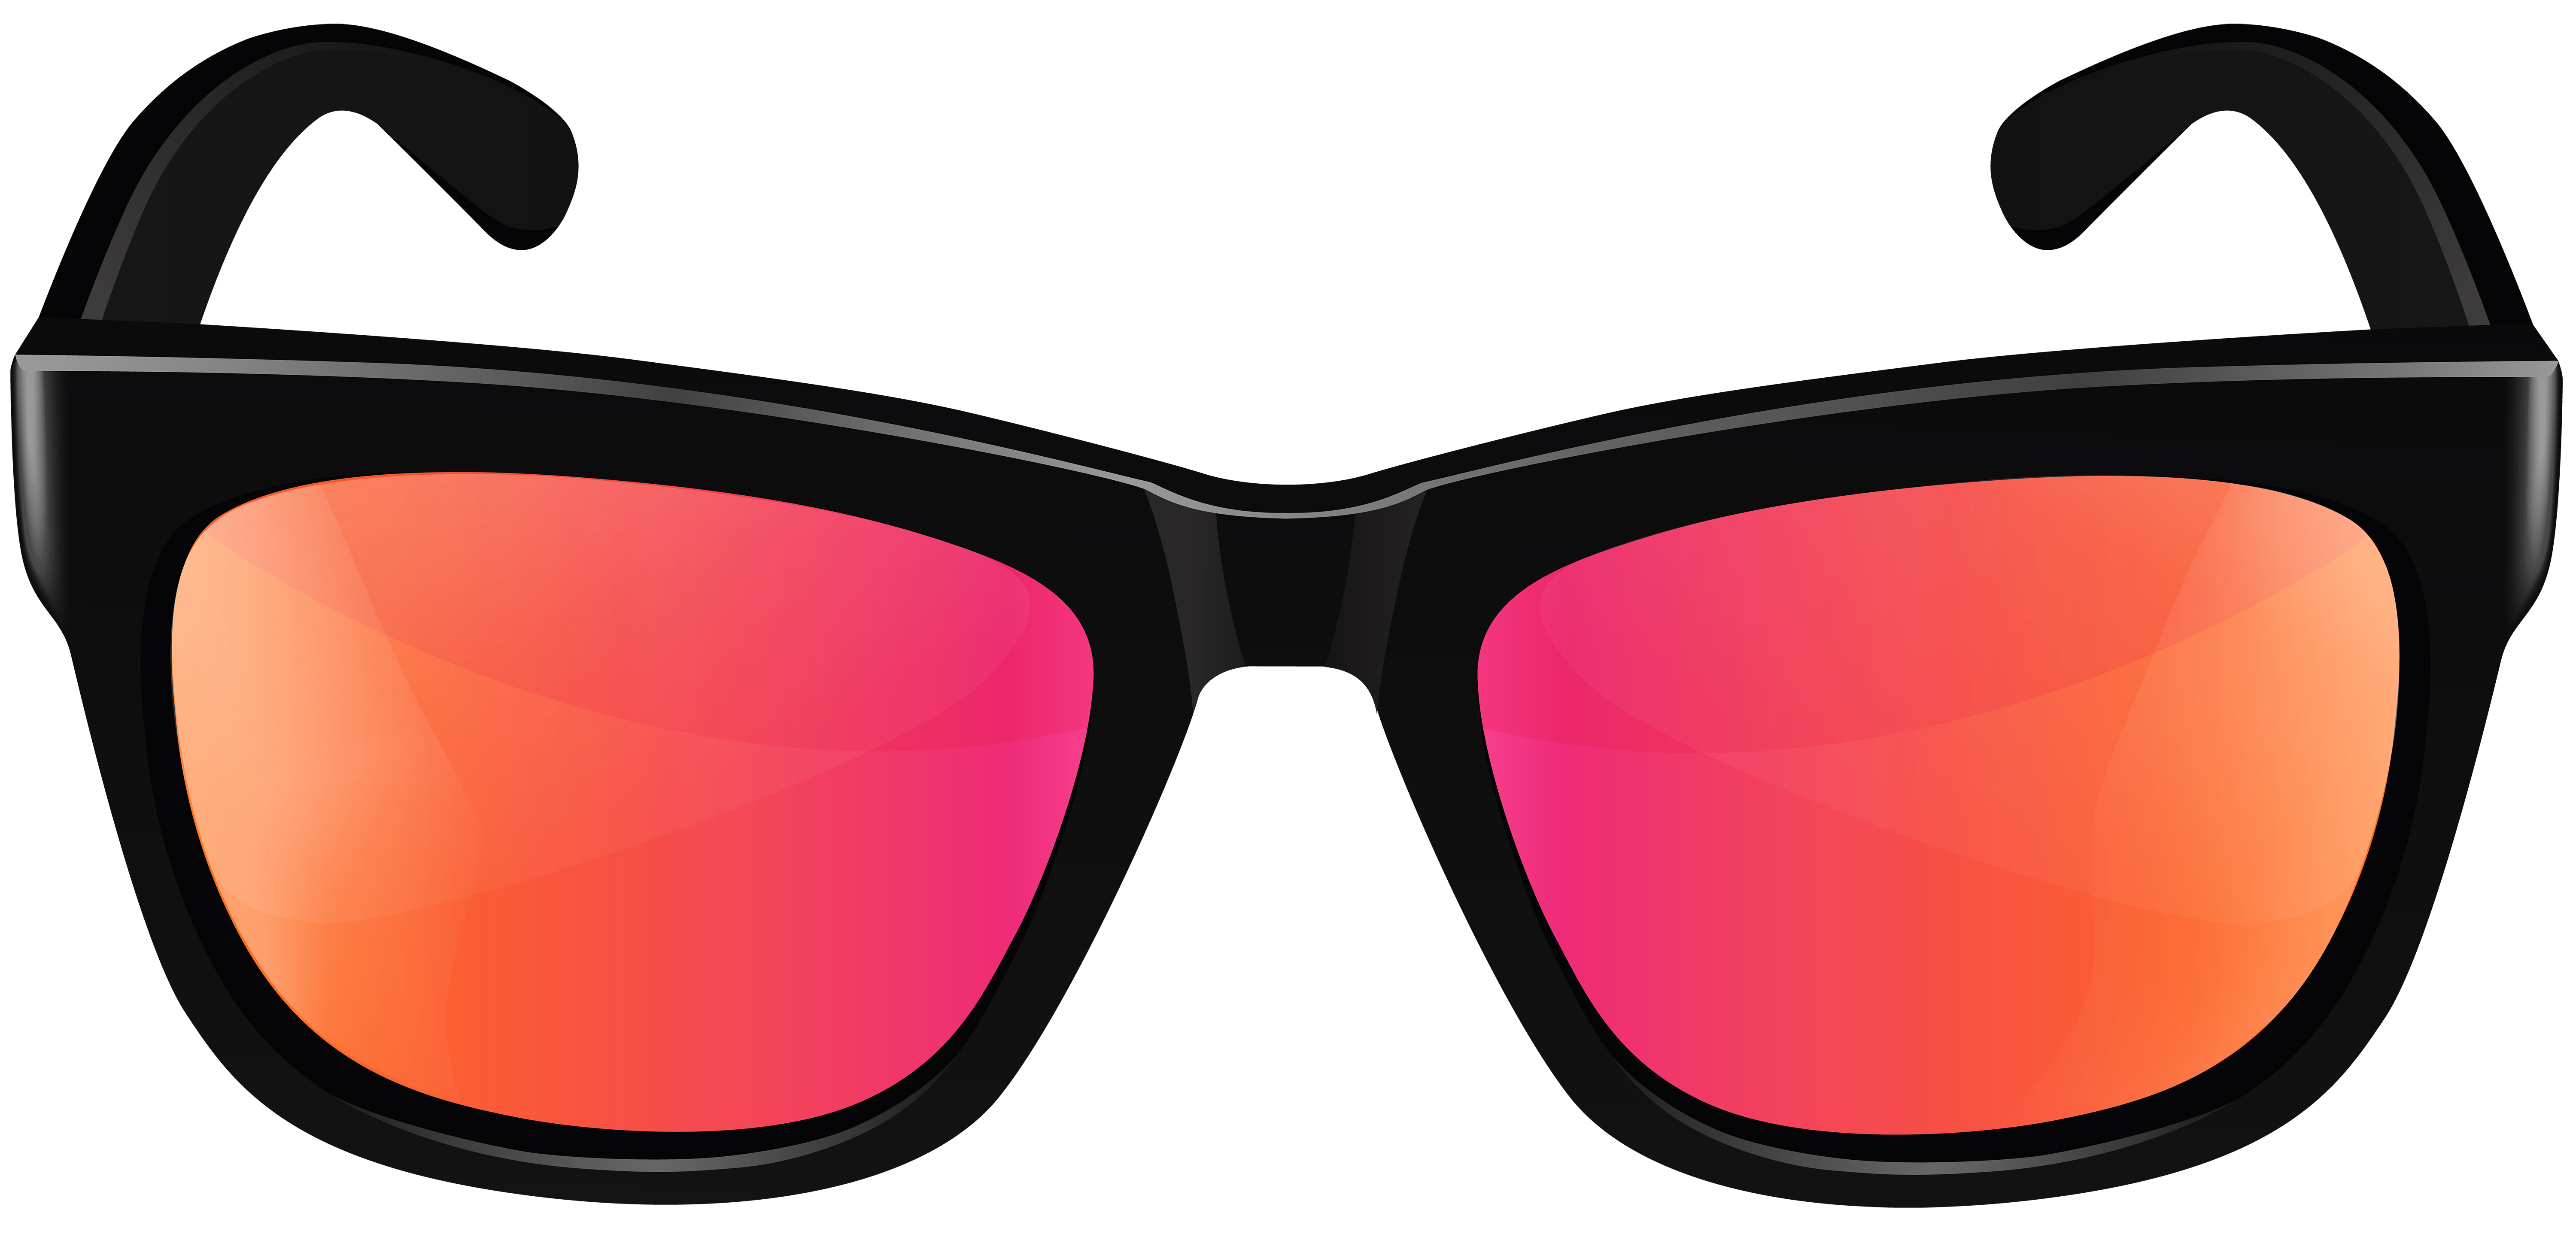 Clip sunglasses. Art png image gallery